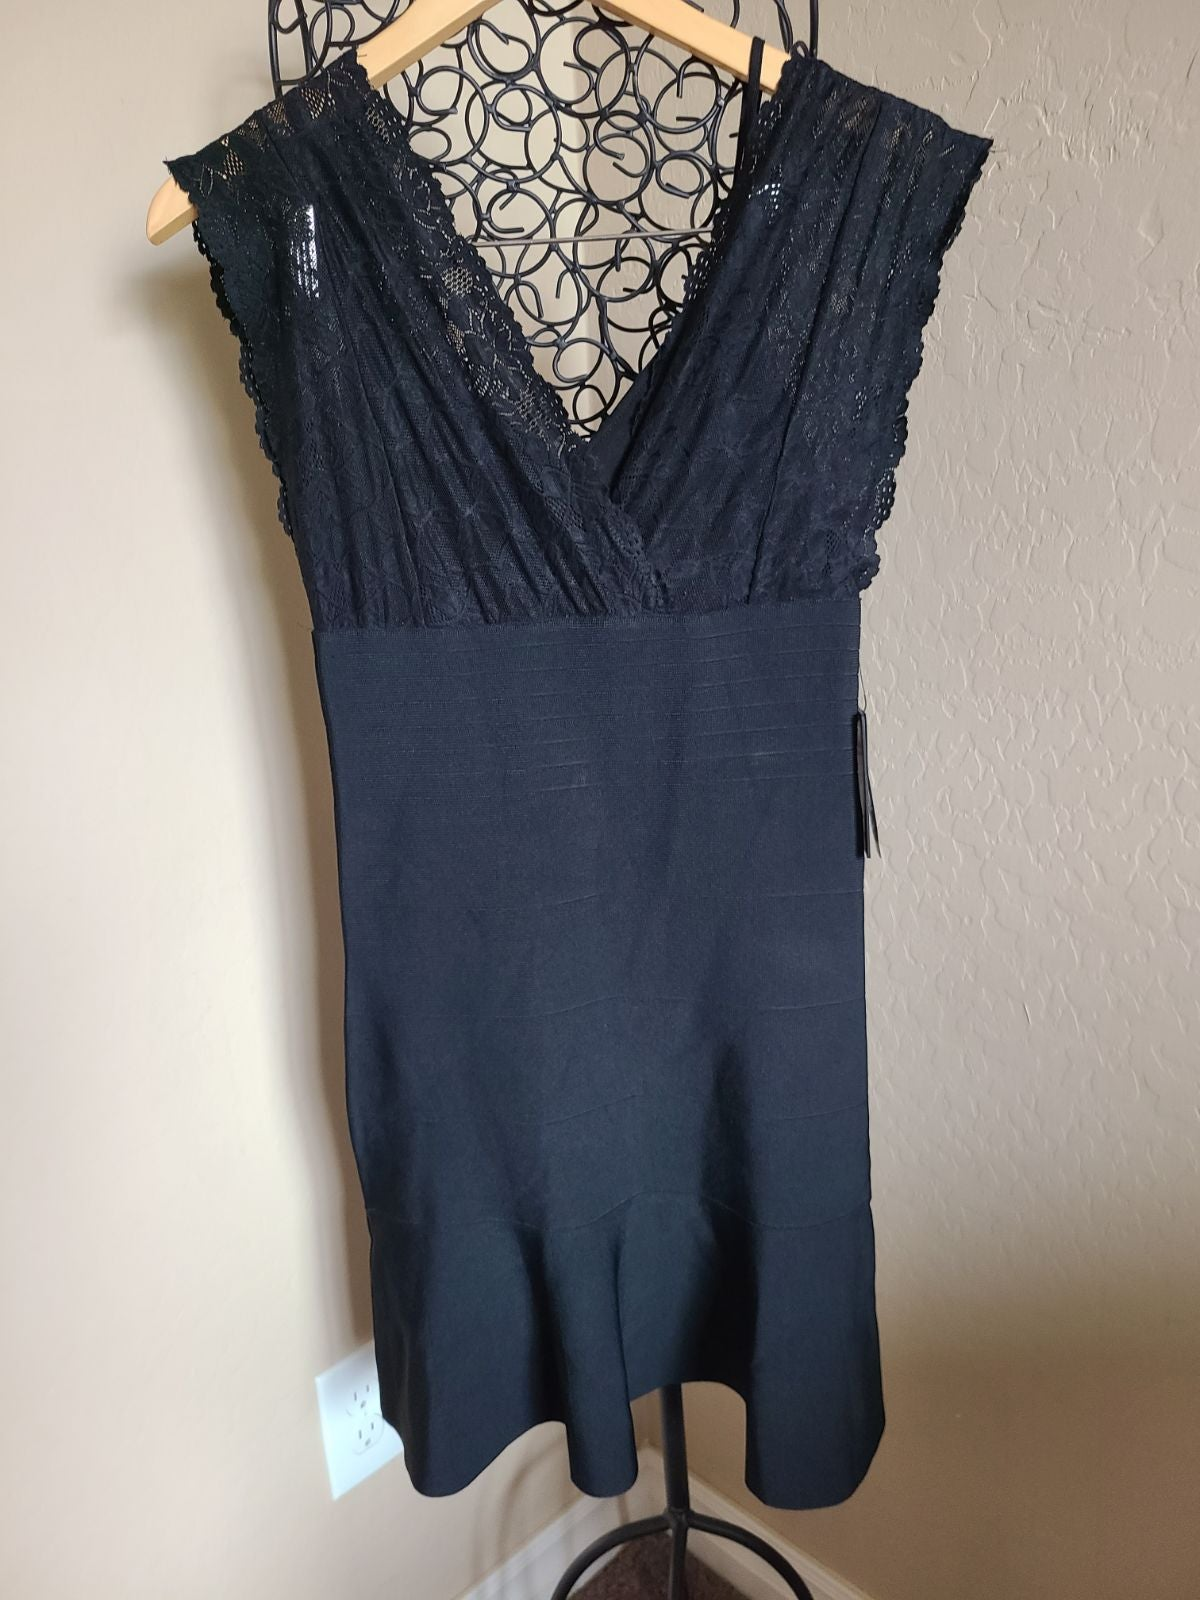 GUESS bandage dress black with lace Med